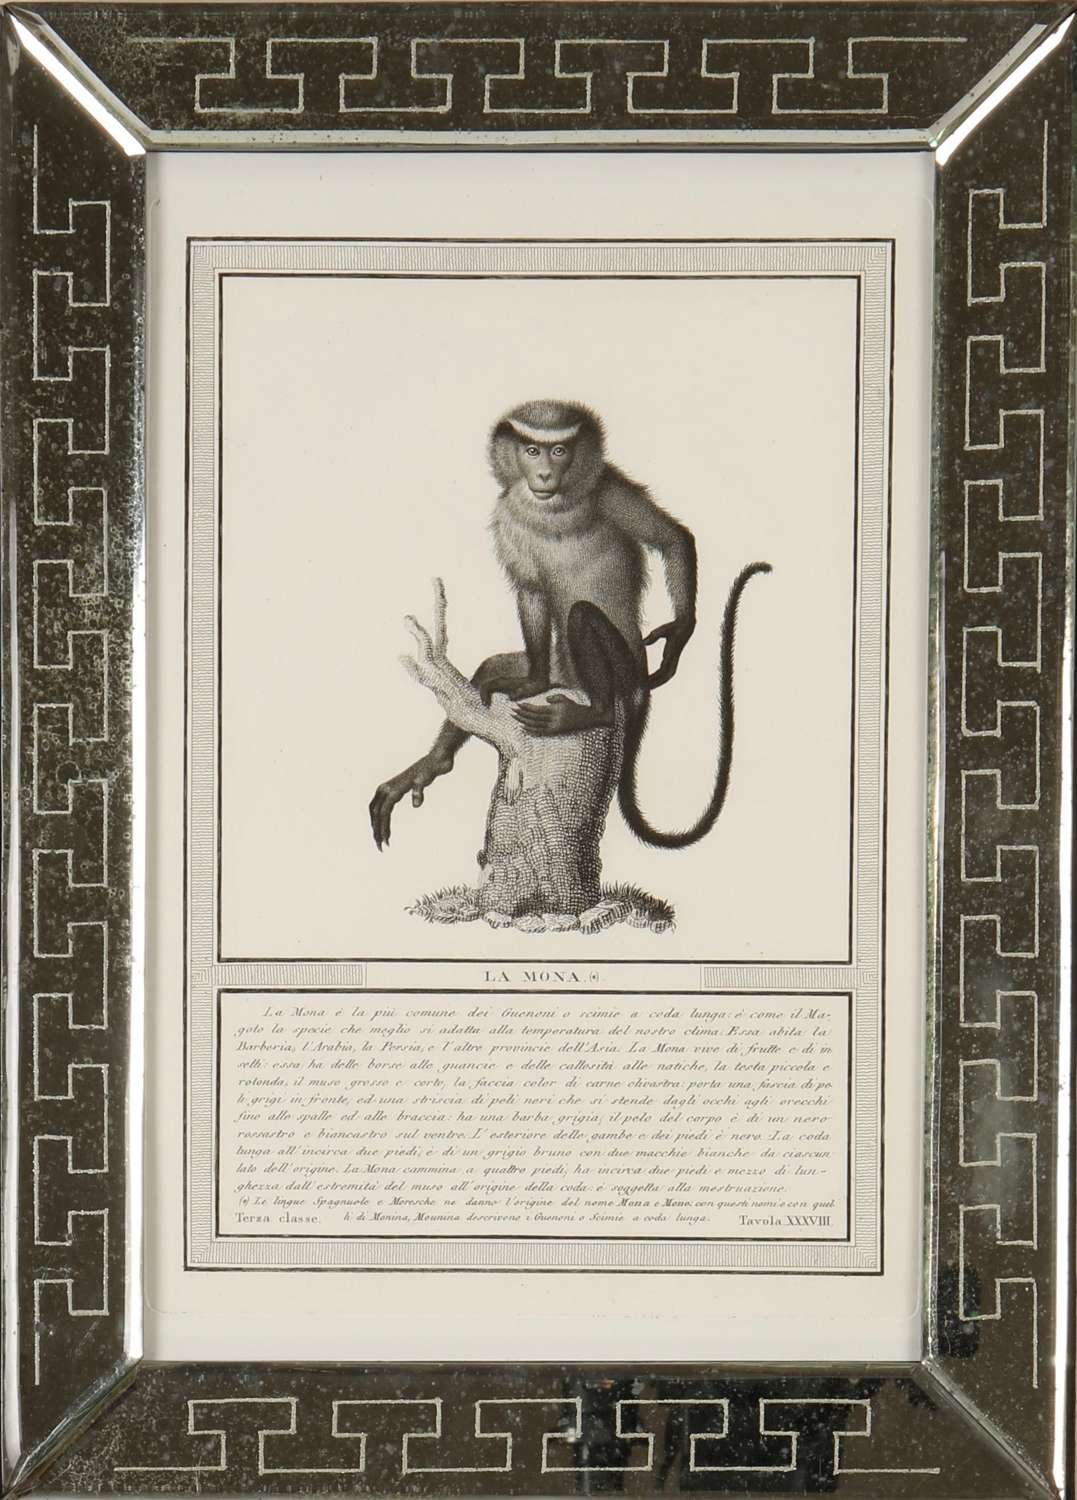 Nicolas Jacob: stipple engravings of monkeys, c1810.